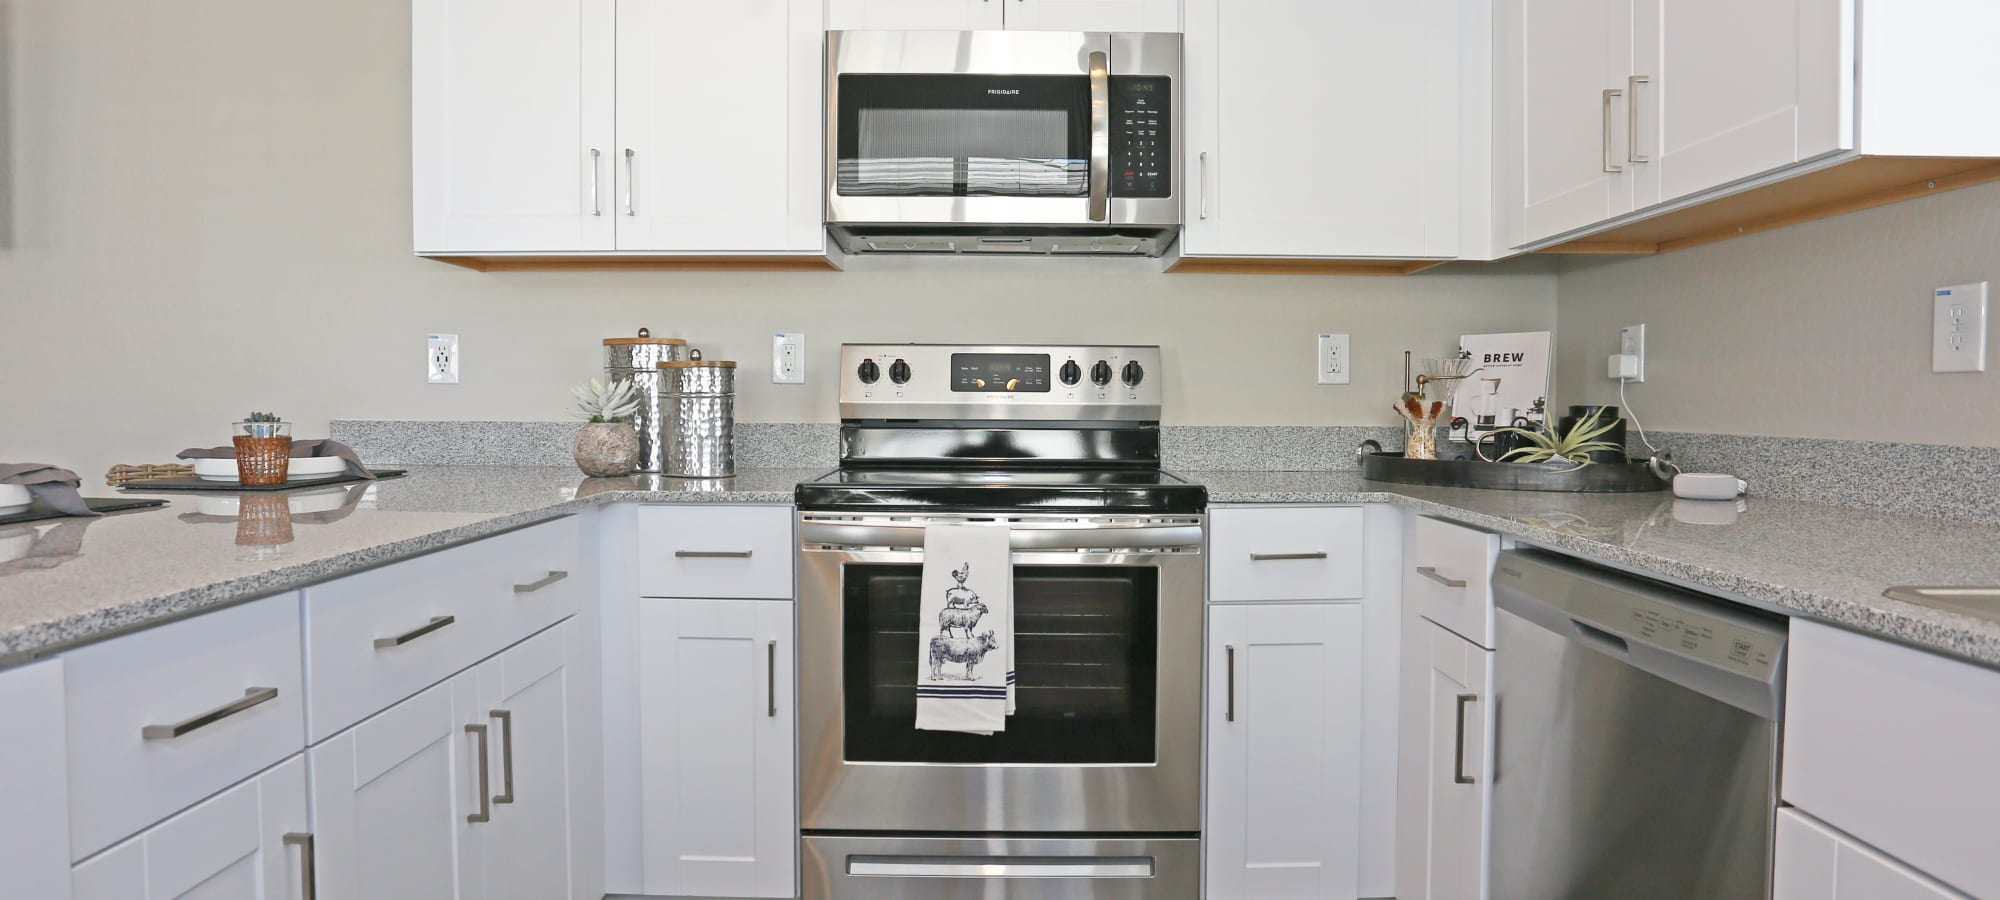 Stainless-steel appliances in a model home's kitchen at Christopher Todd Communities At Estrella Commons in Goodyear, Arizona